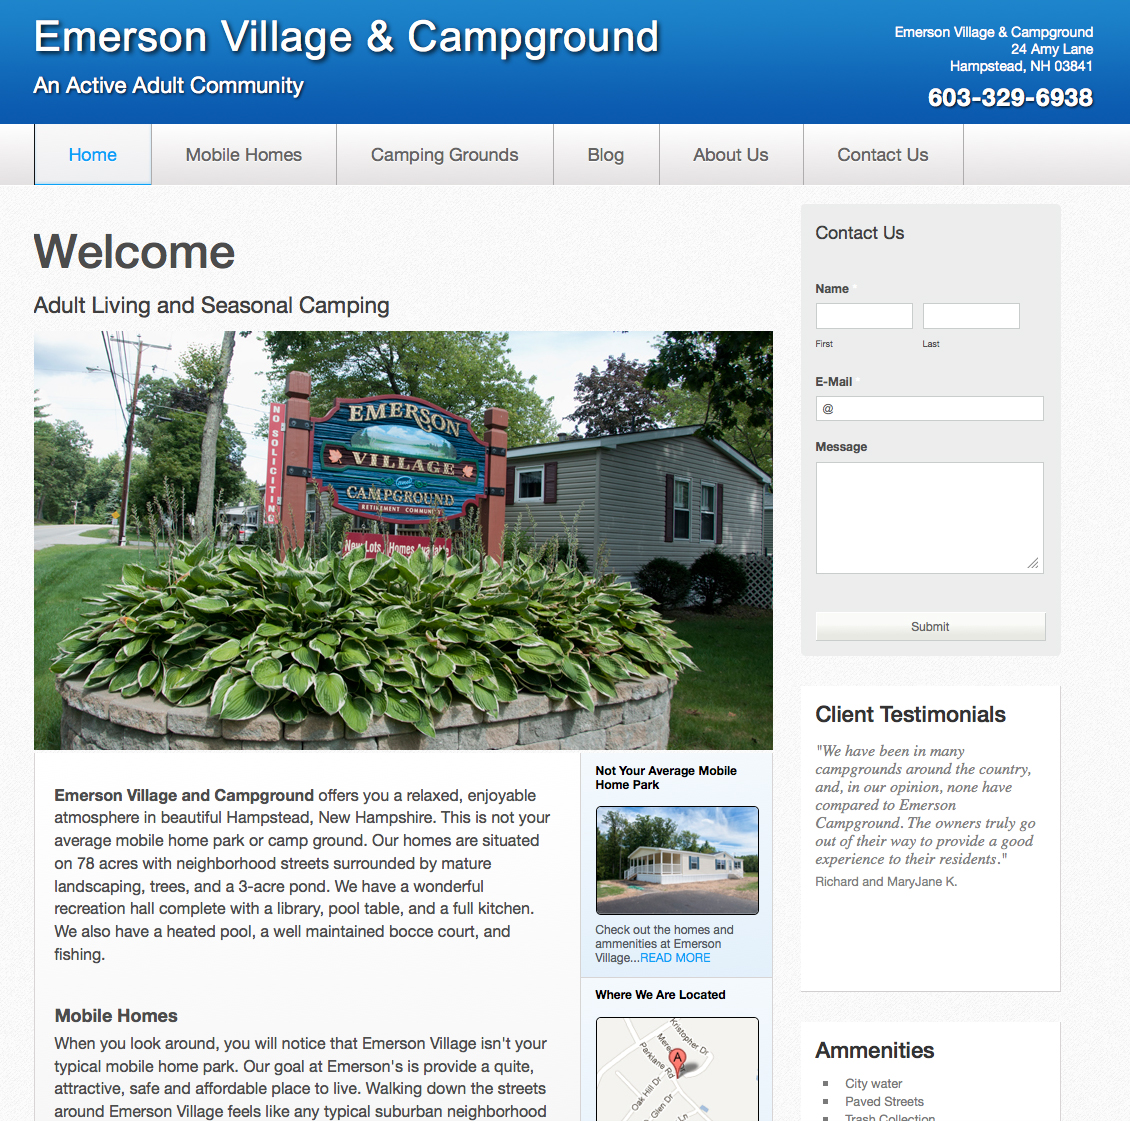 emersoncampground